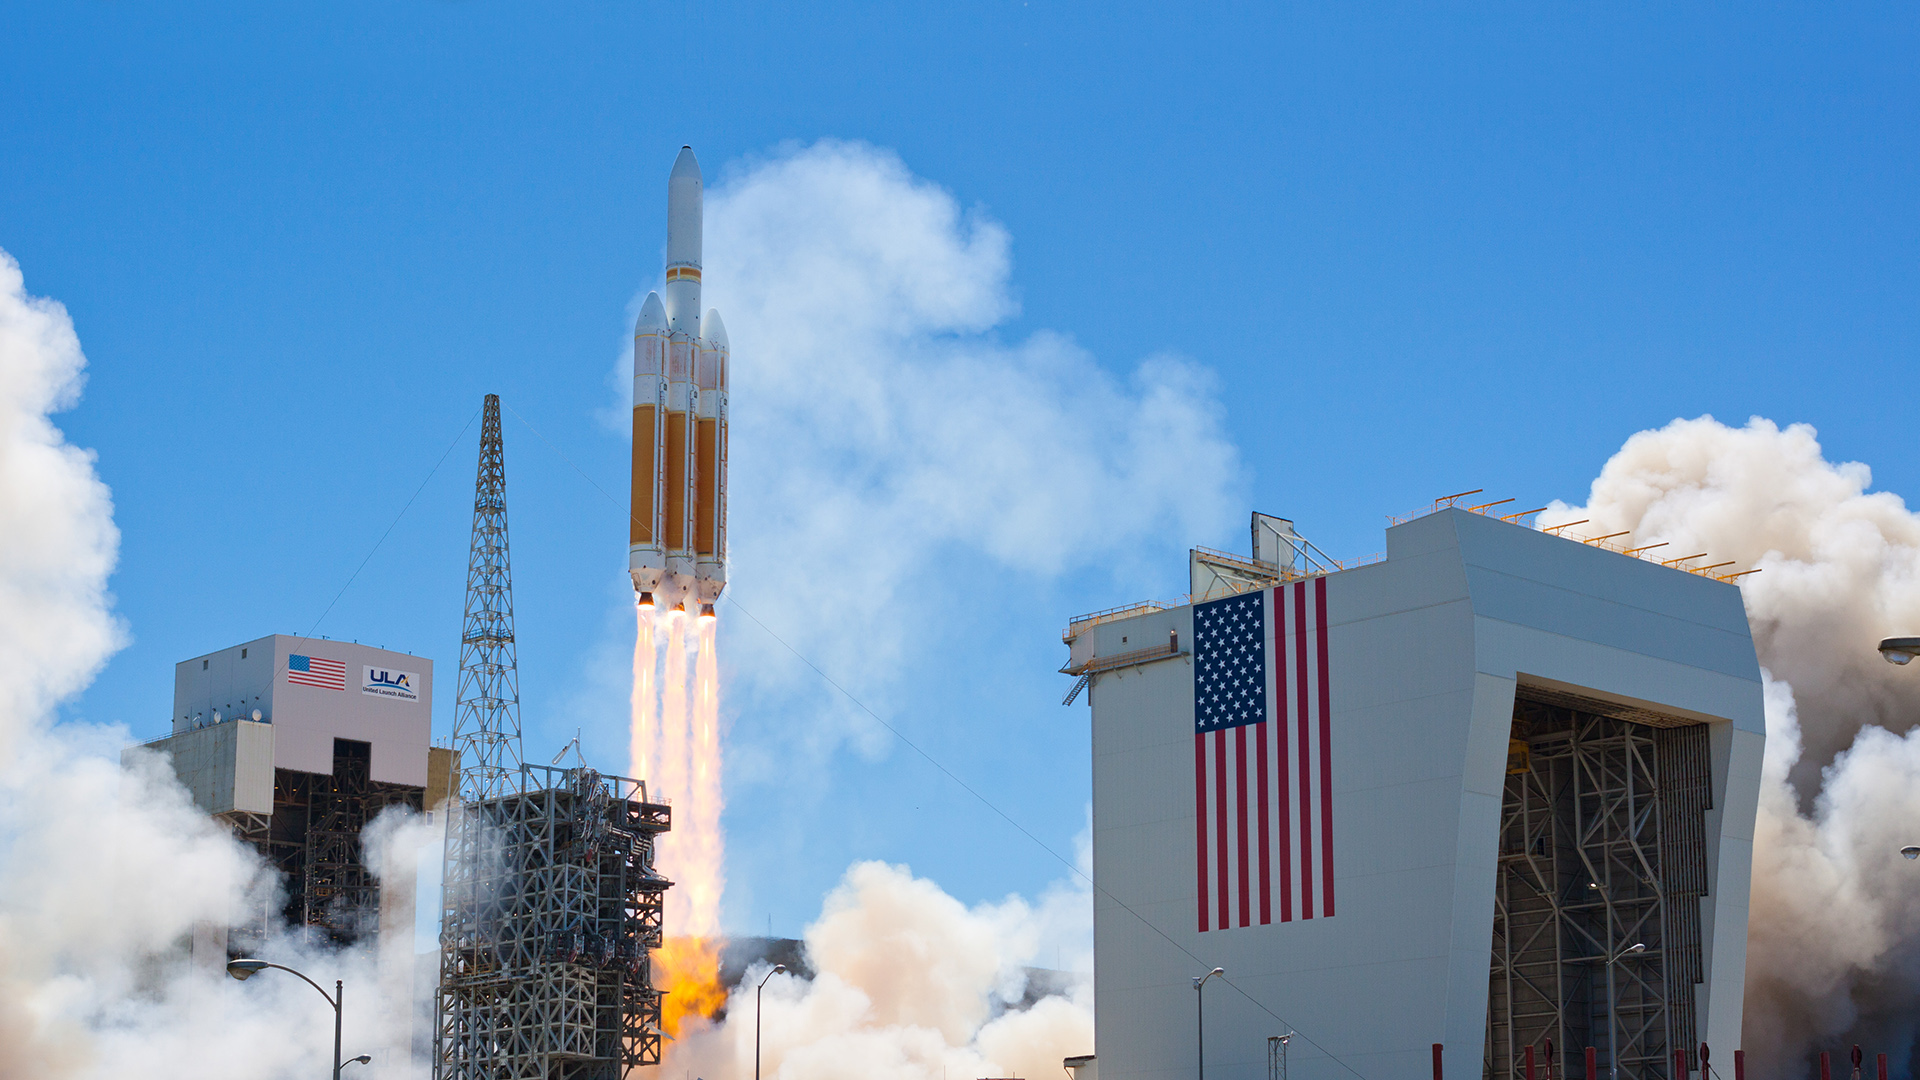 Rockets_DeltaIV_Header